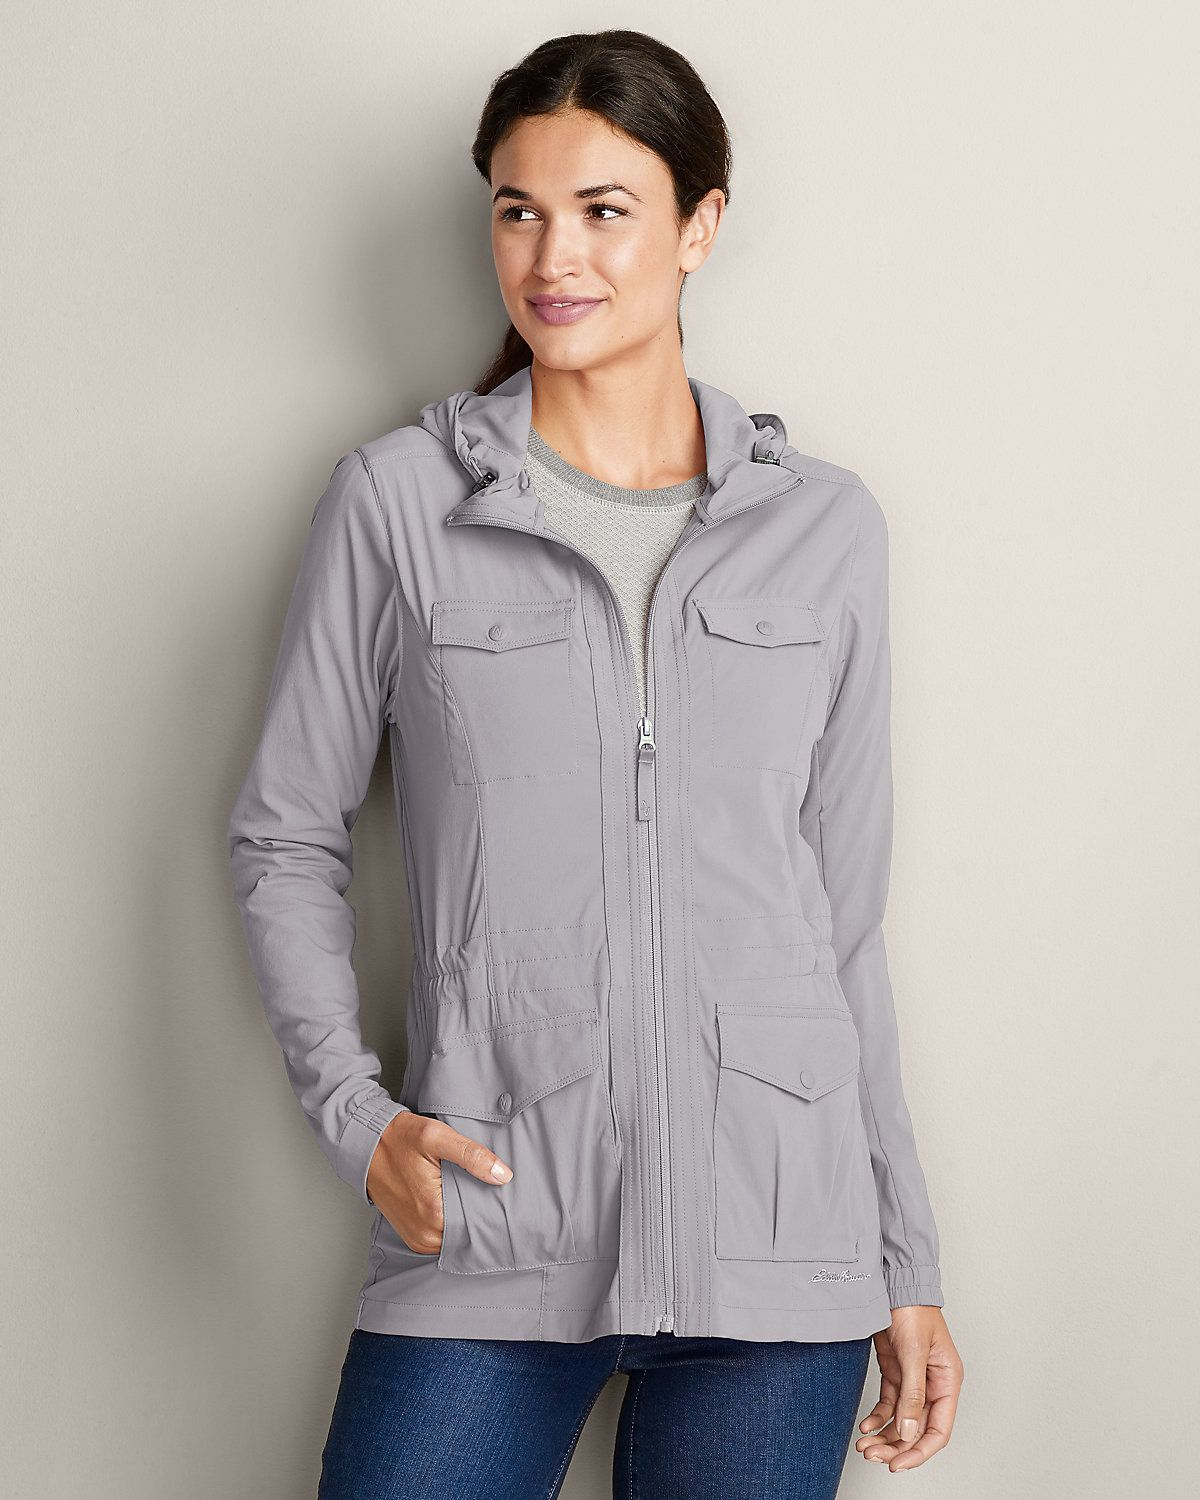 Atlas Ii Jacket | Eddie Bauer | Women, Jackets, Women shopping